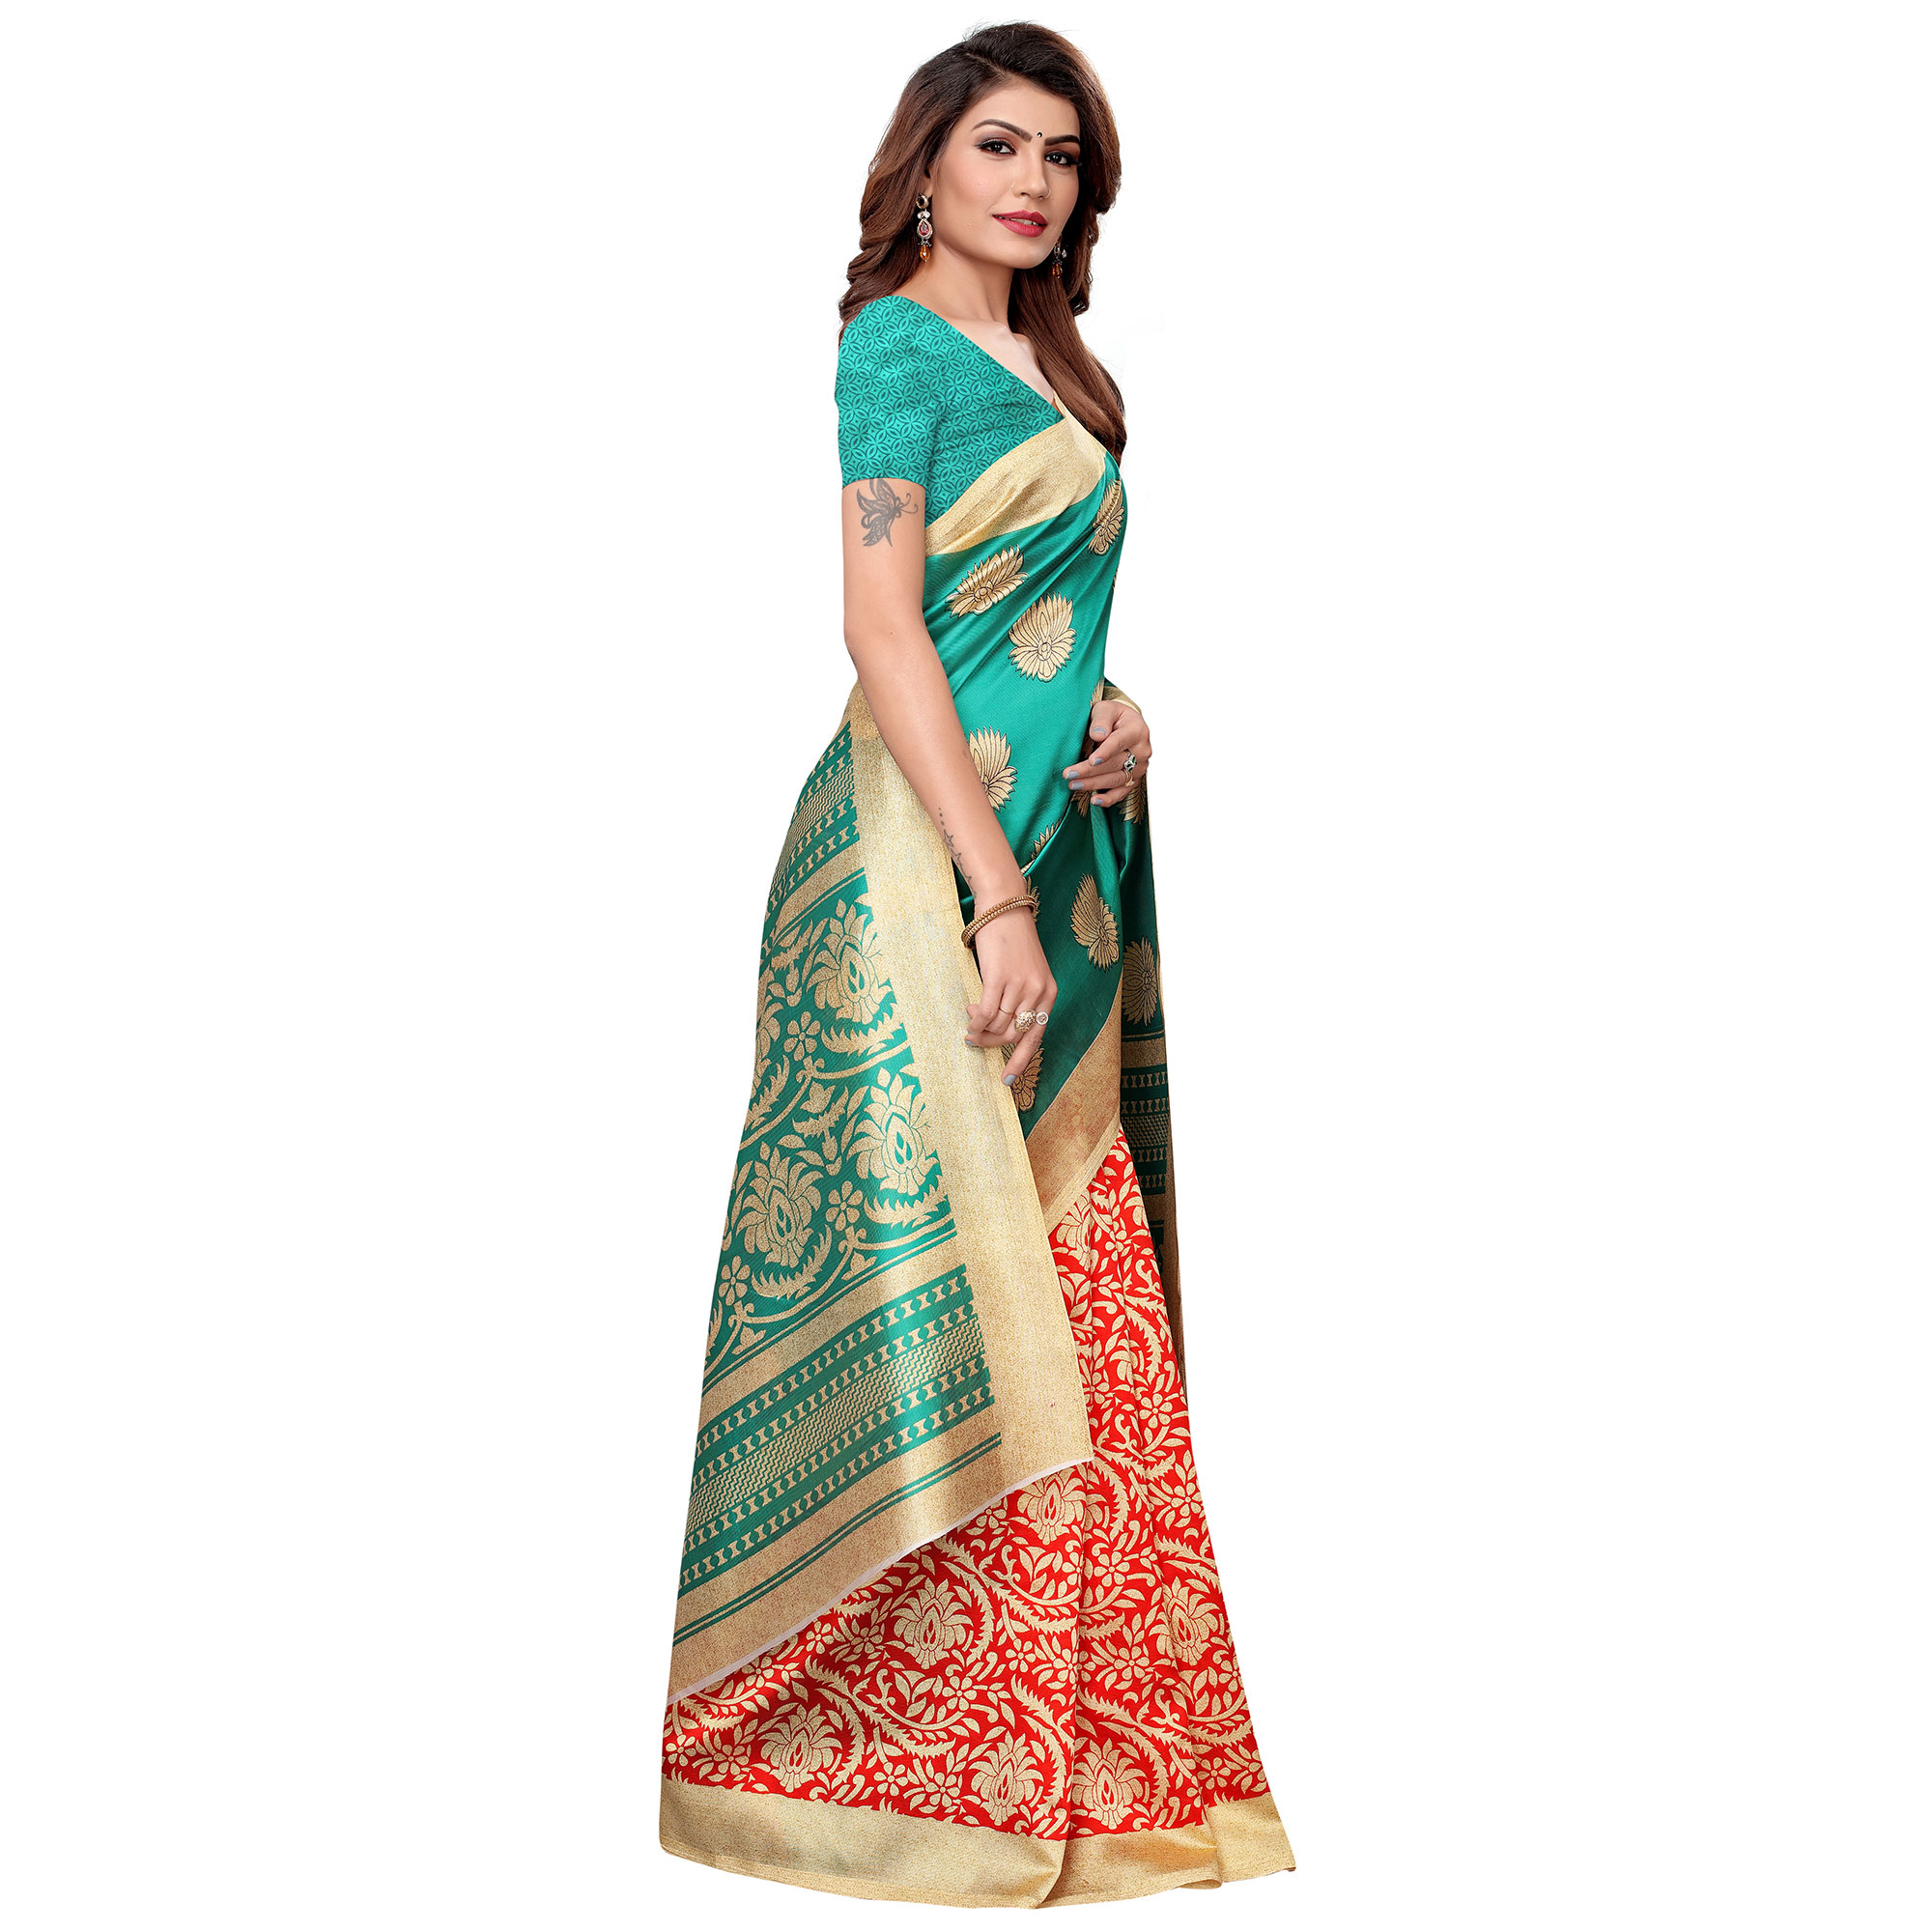 Blissful Turquoise Green-Red Colored Casual Printed Art Silk Saree